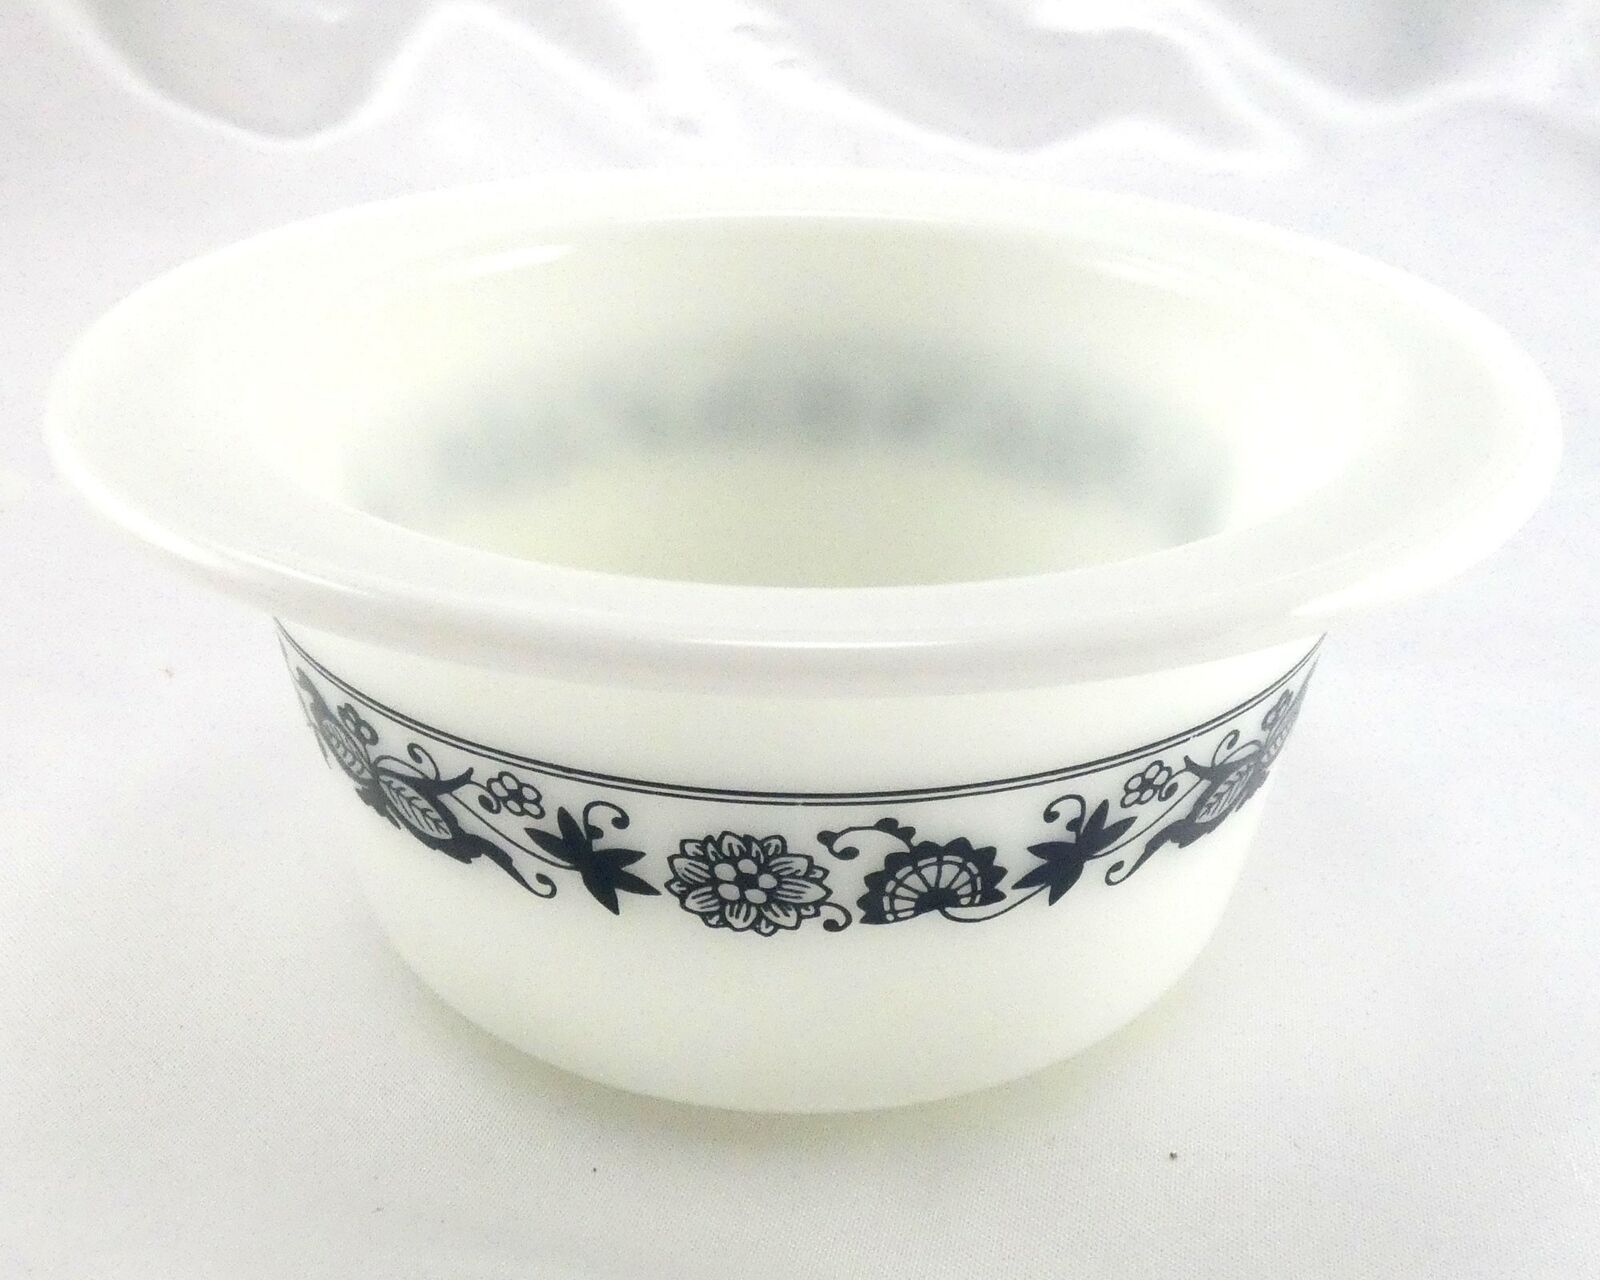 Pyrex 75 Old Town Dish Blue Wide Extended Rim Crock Style Bowl ~ Made in the USA